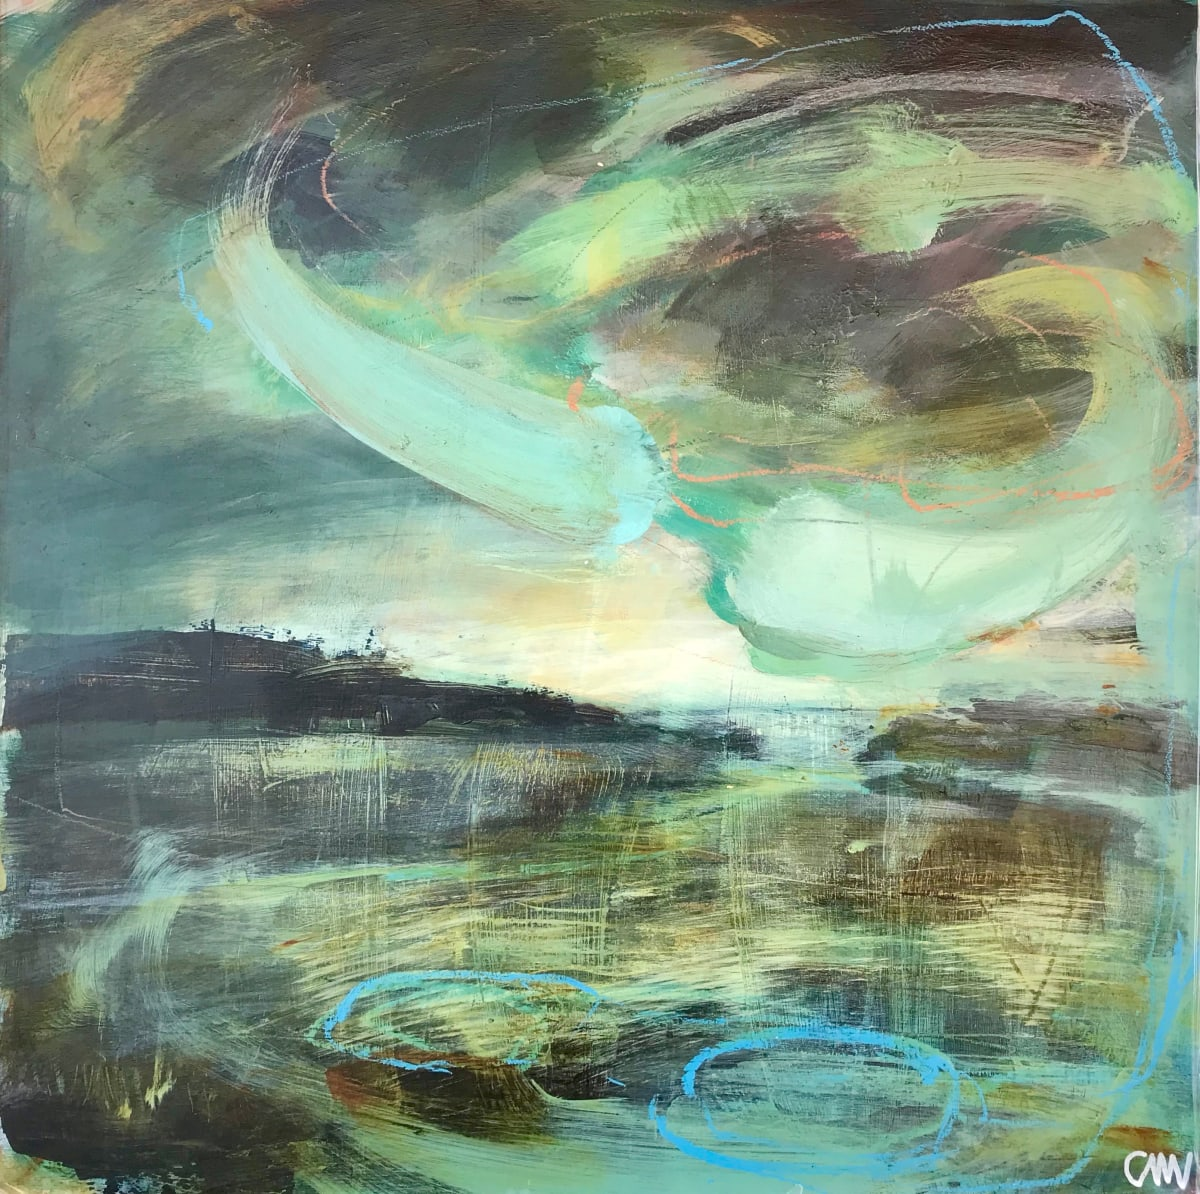 Clare Maria Wood Winter Seas IV, 2019 Mixed Media Painting 50 x 50 x 5 cm 19 3/4 x 19 3/4 x 2 in